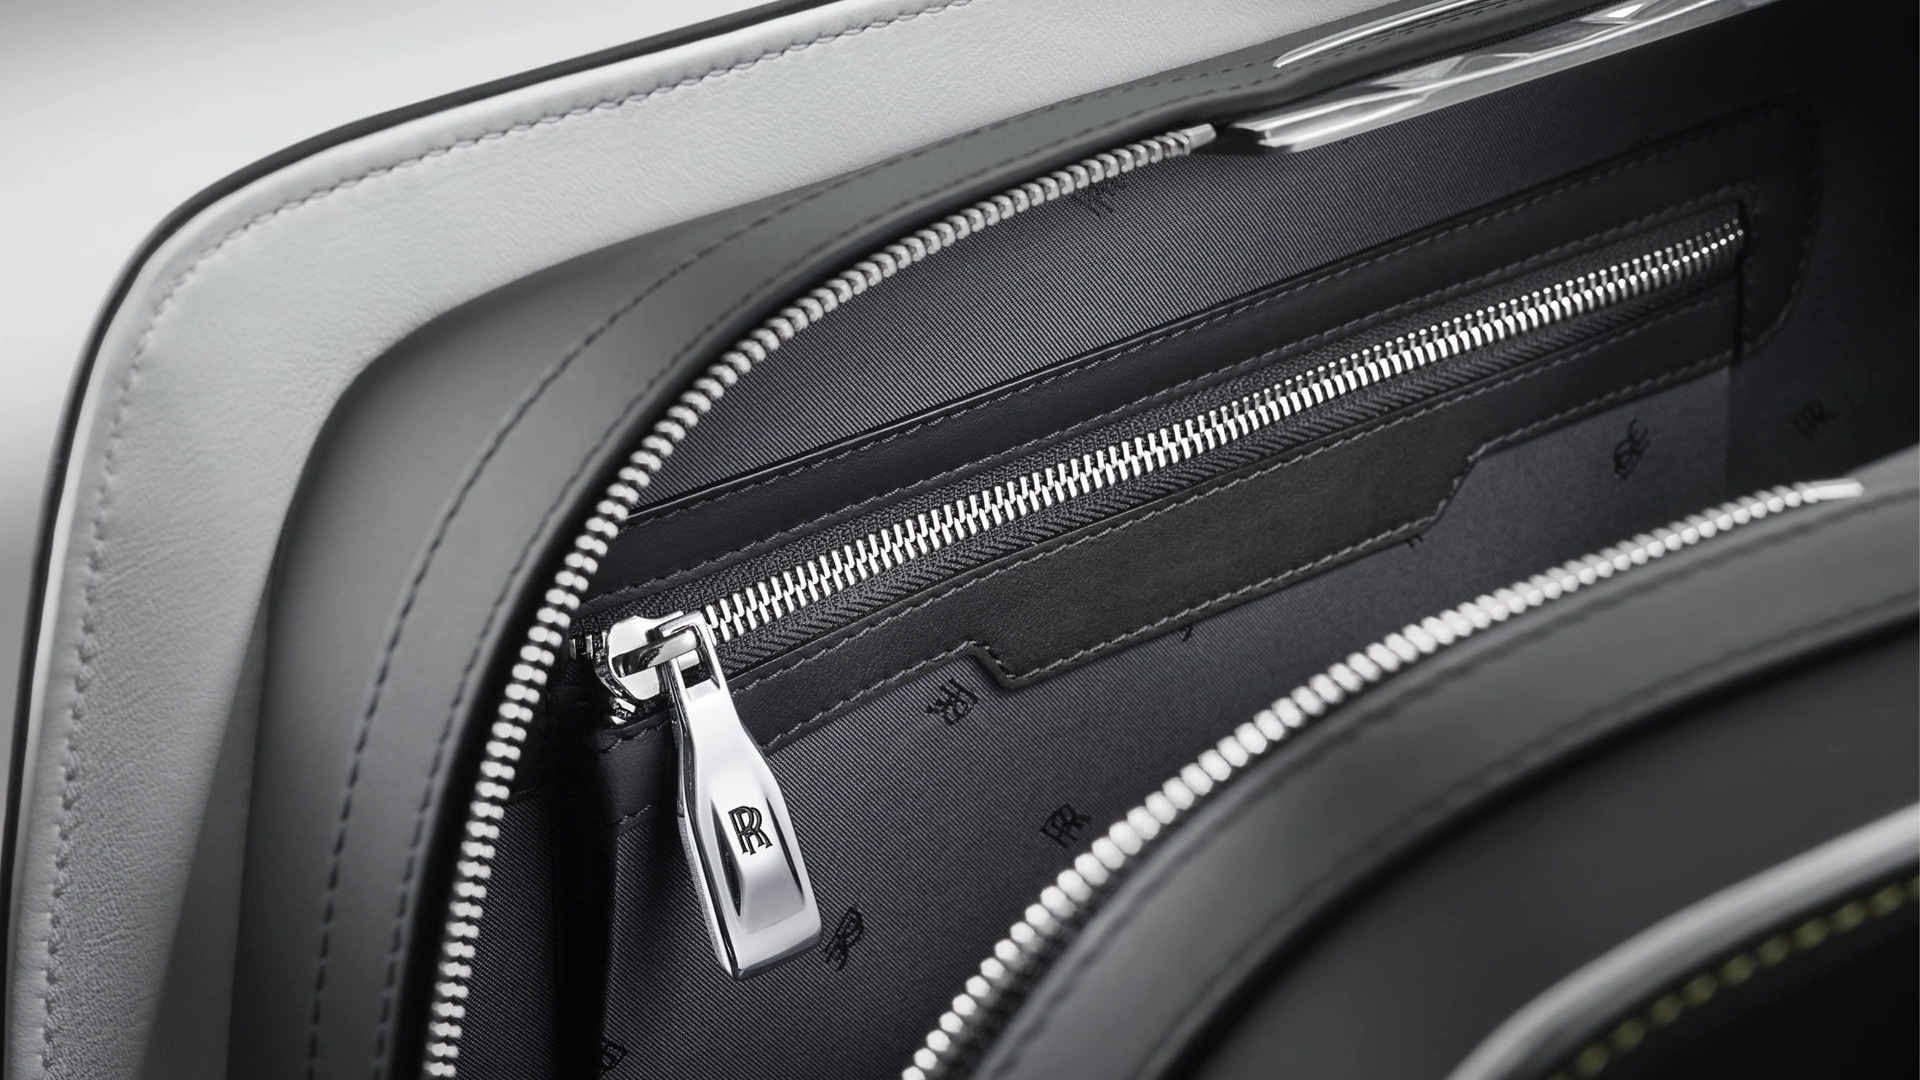 Close-up detail of the Long Weekender from the Rolls-Royce Kinetic Luggage Collection with unique magnetic zip